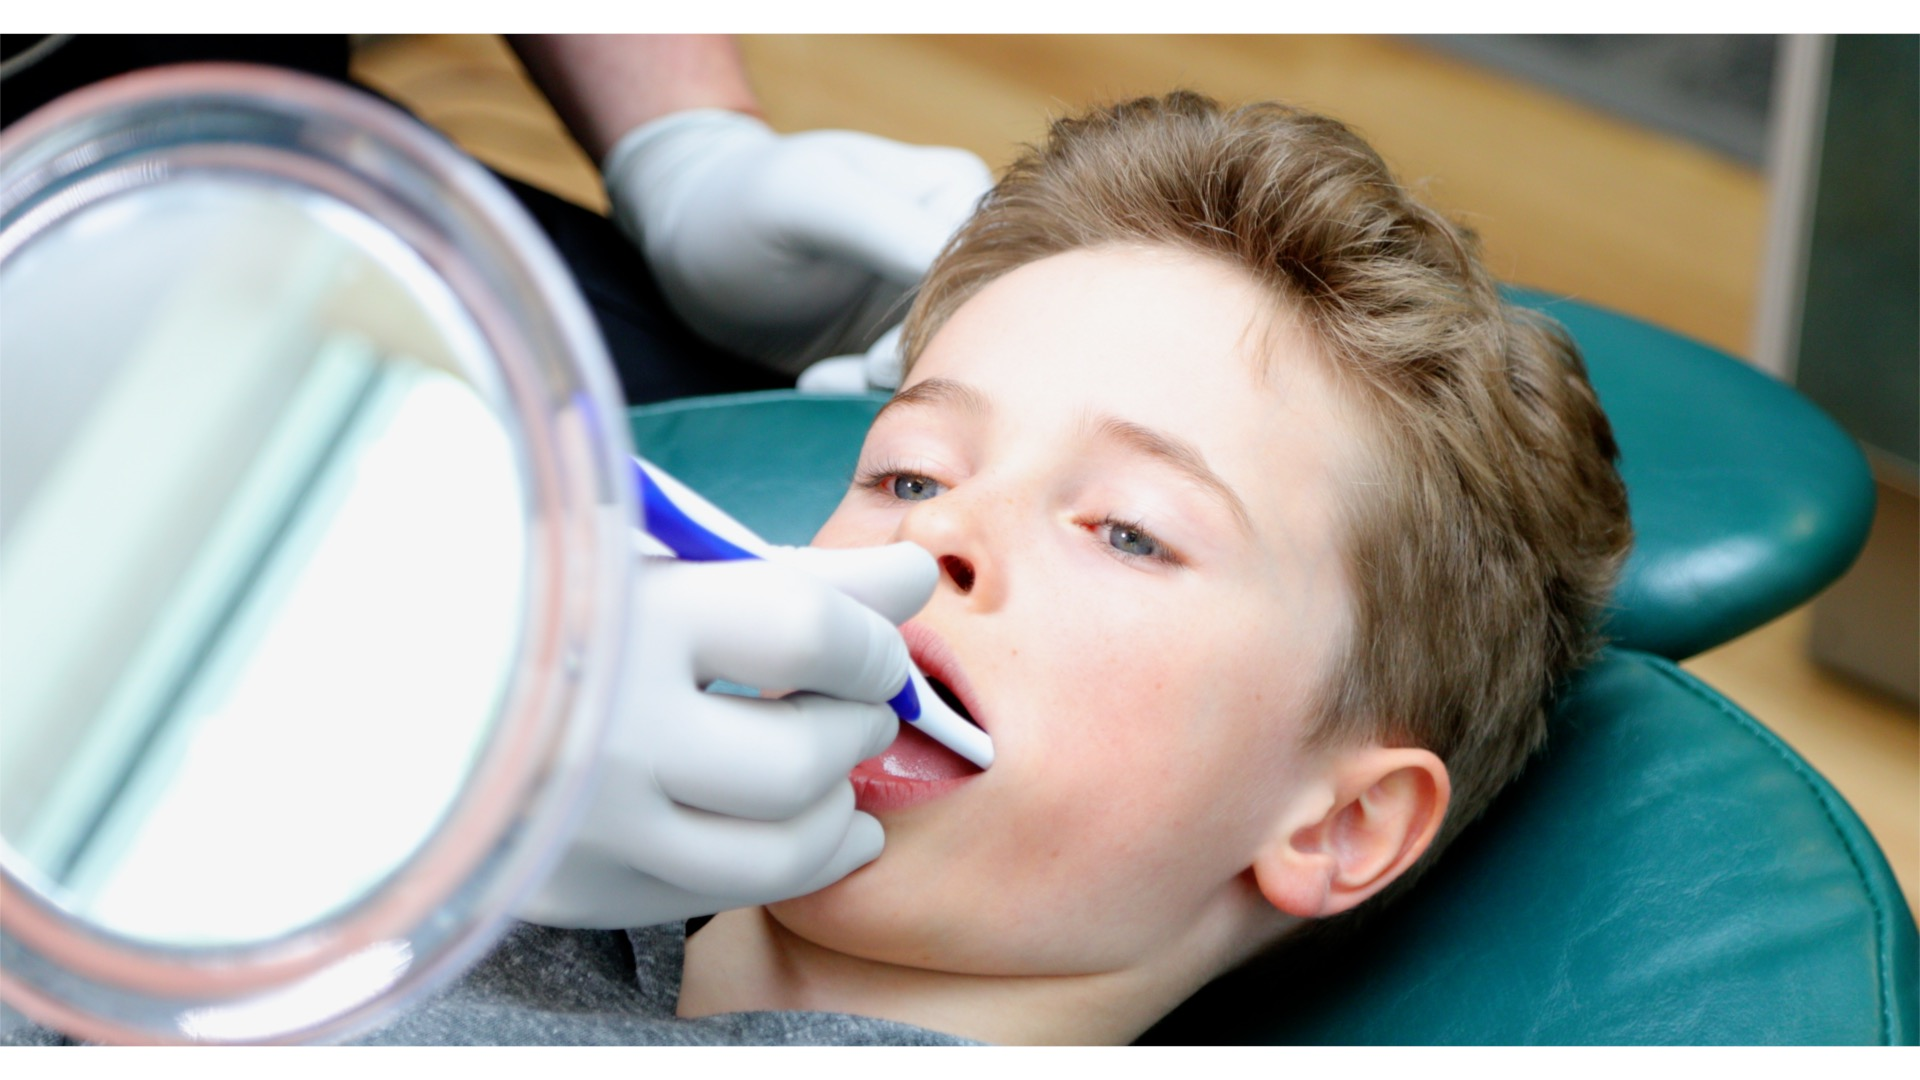 murphy-kid-dentist5.jpg